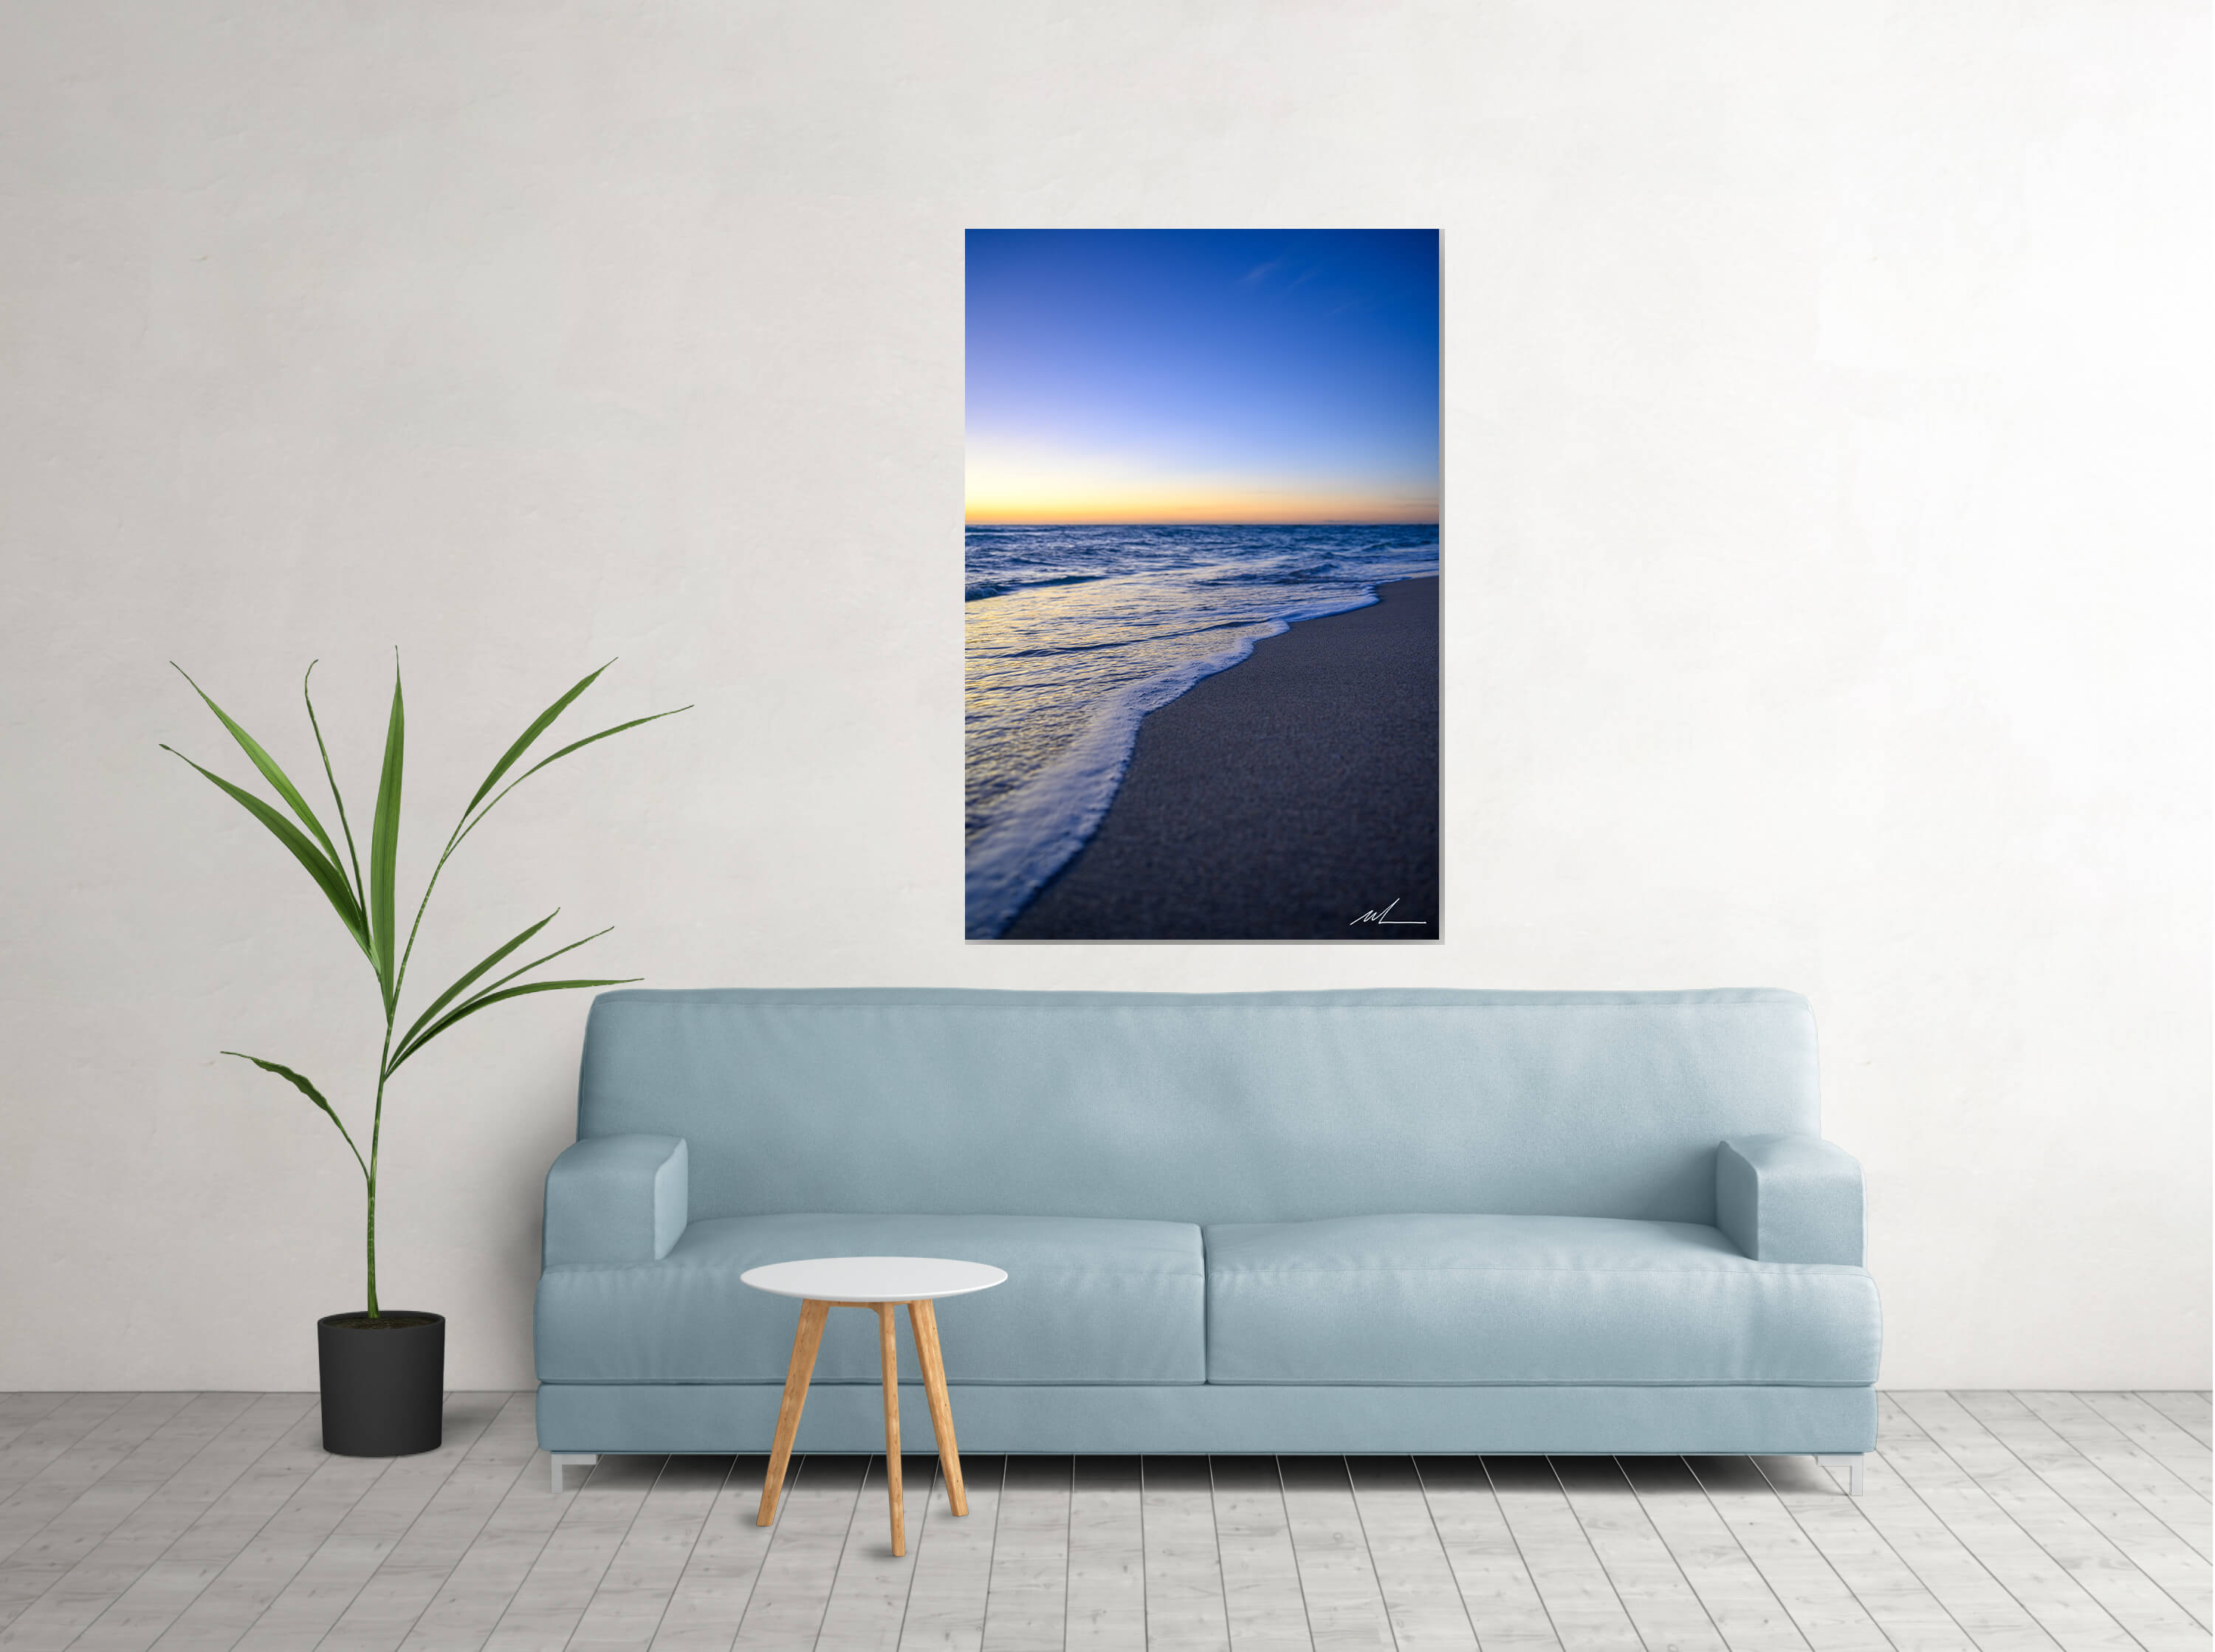 Miami Beach sunrise photo displayed in living room